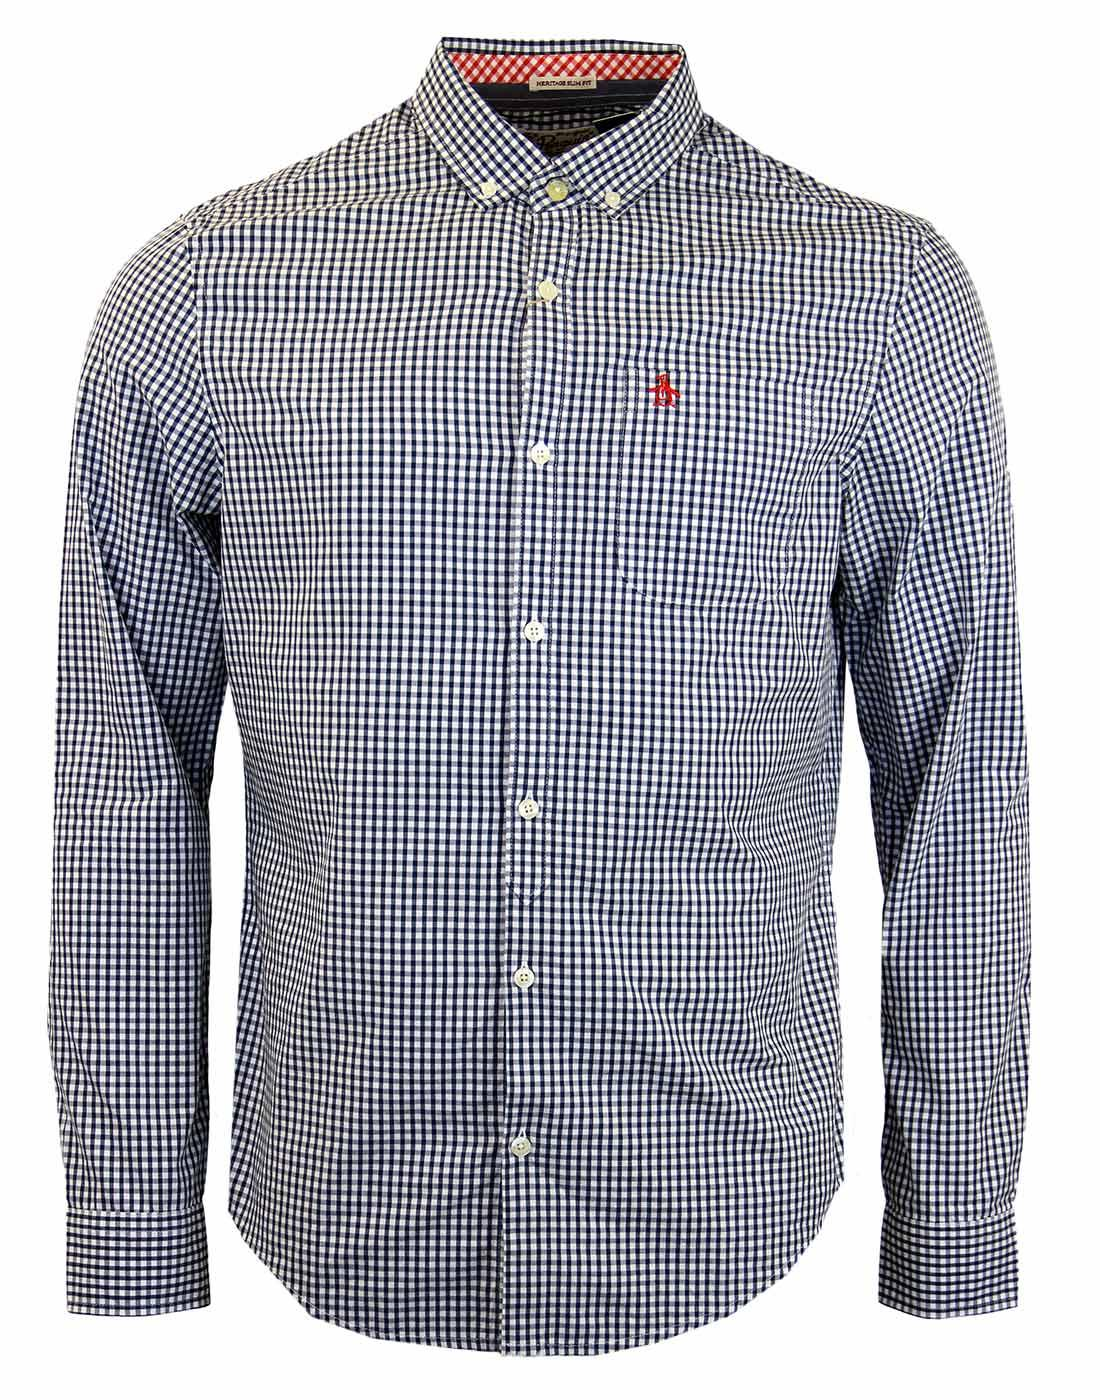 ORIGINAL PENGUIN Retro Mod Gingham Shirt